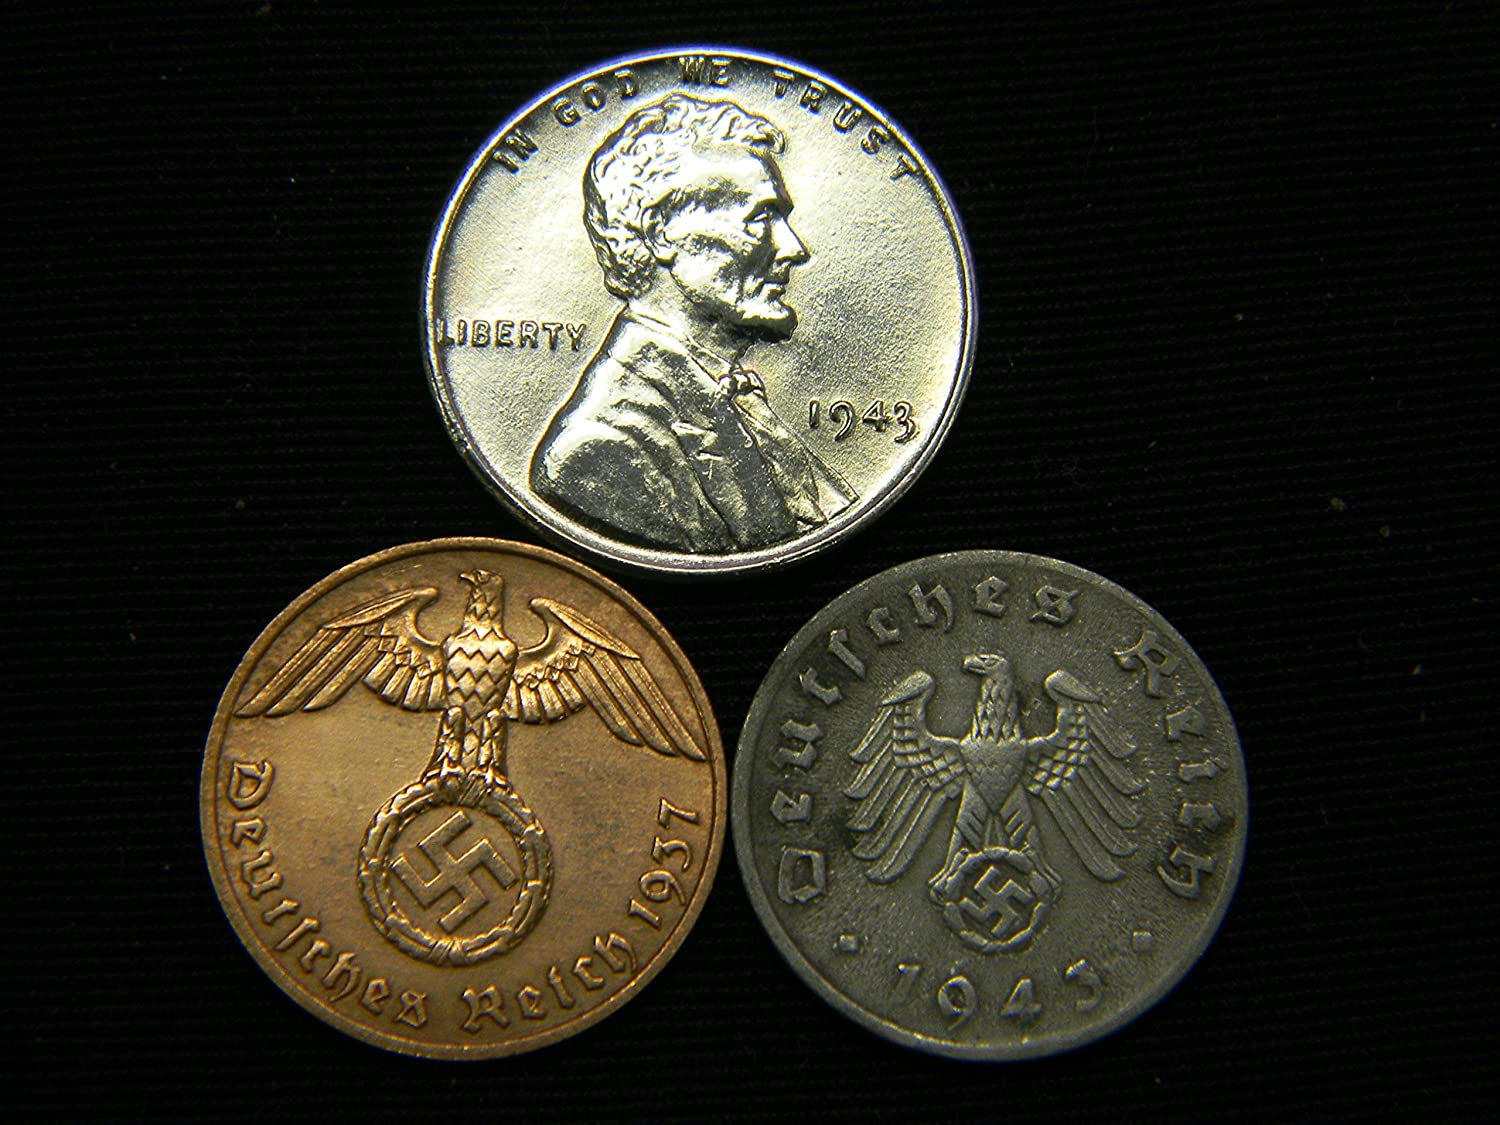 AU 1943 Steel New popularity Cent + Nazi Luxury goods Coin WW2 3rd Lot US German Reich